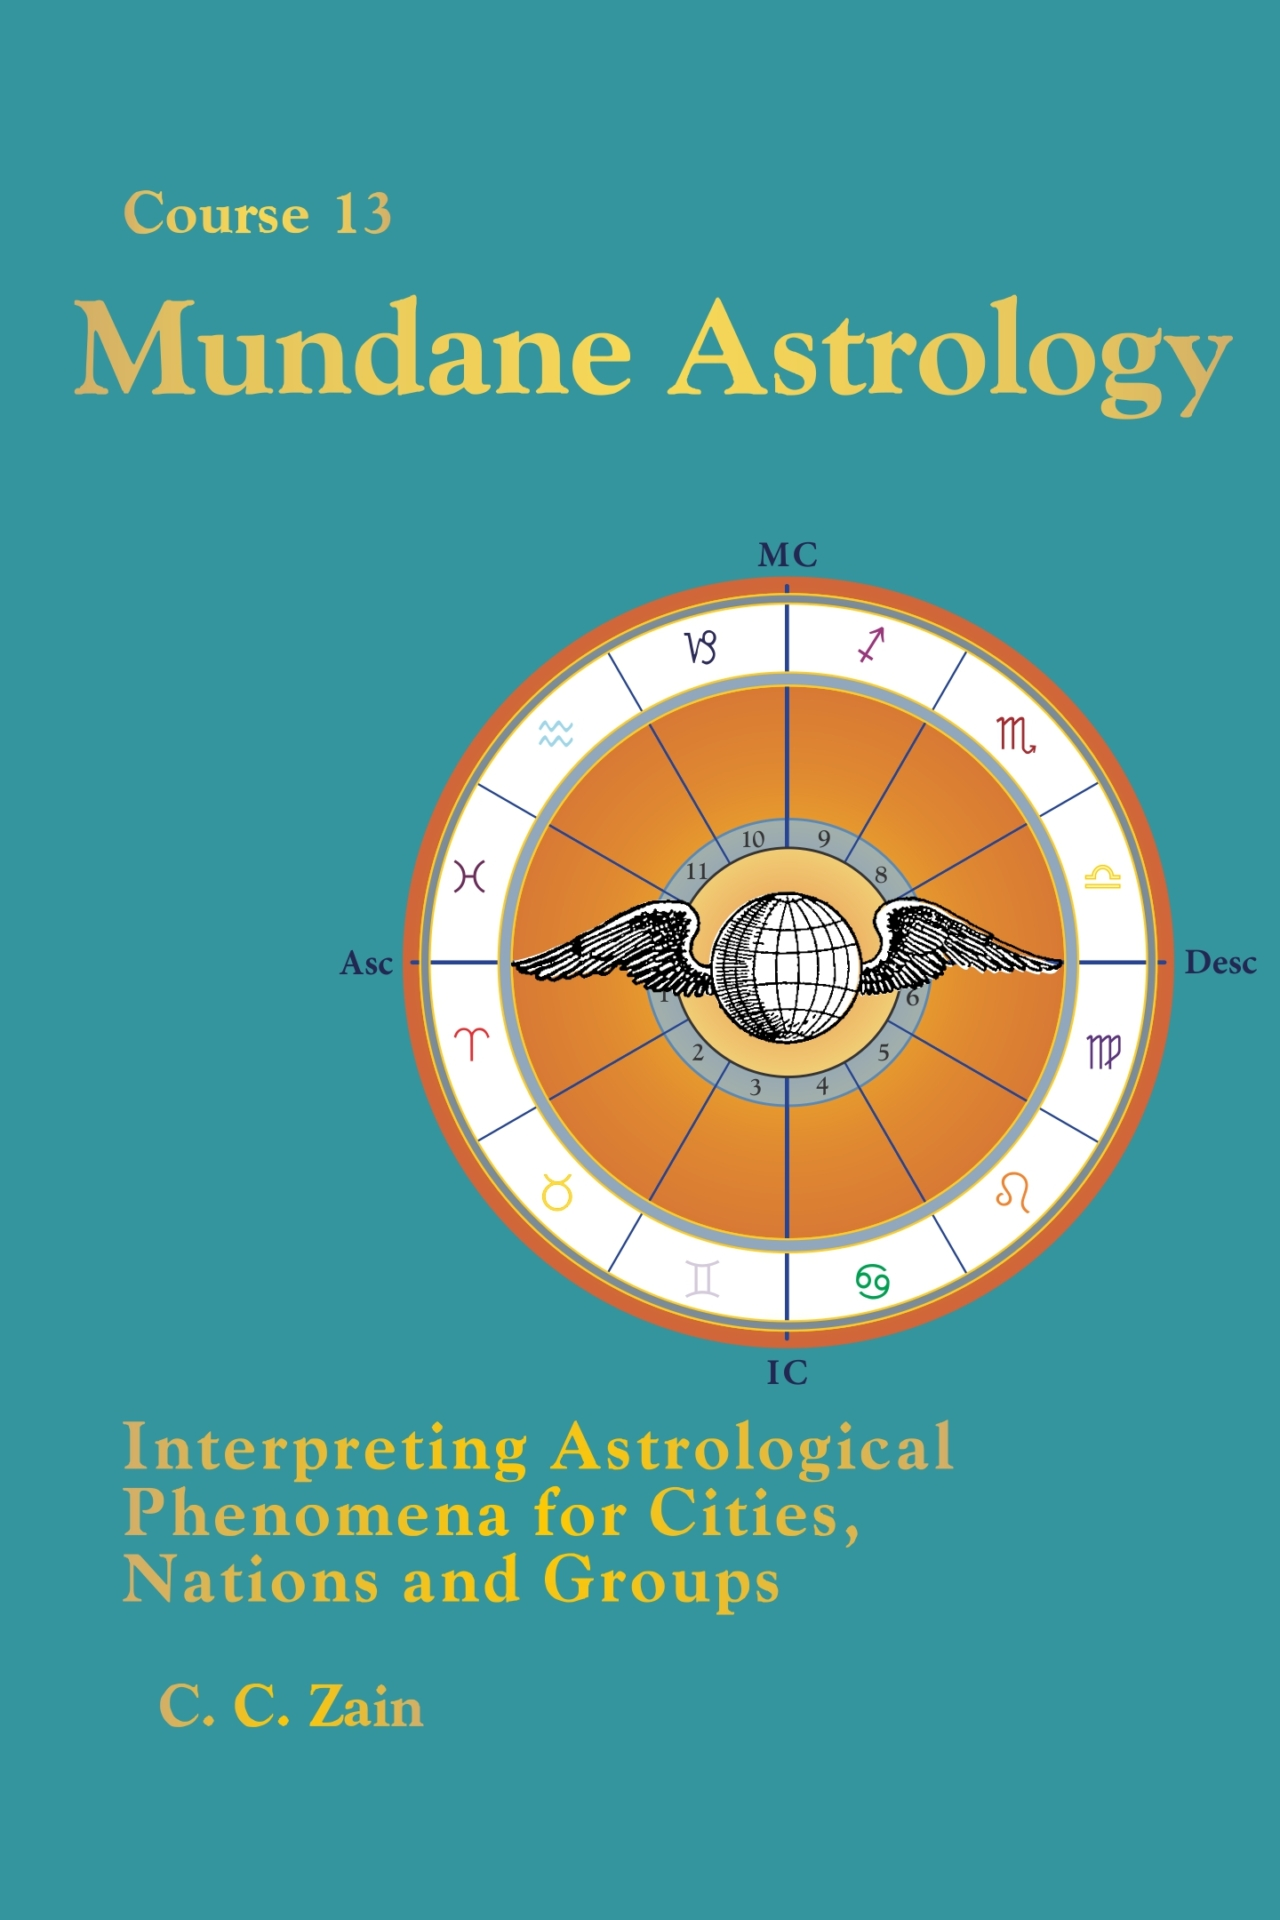 https://study.academyofhermeticarts.org/wp-content/uploads/2020/04/13_Mundane_Astrology_eBook_Cover-1280x1920.jpg